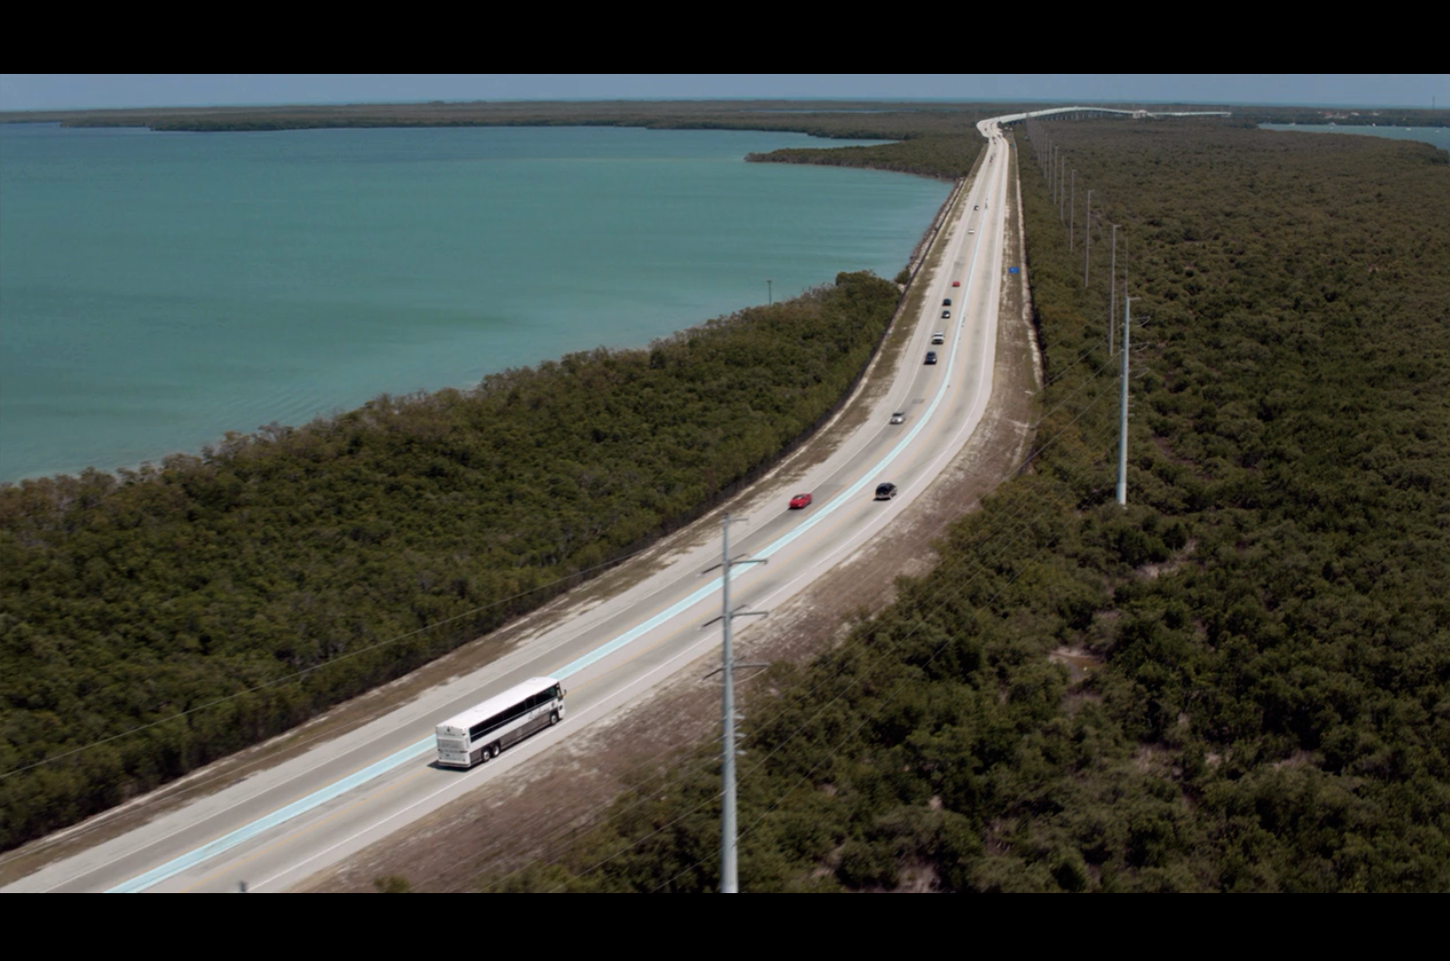 Screenshot from the opening sequence of Bloodline's pilot episode, filmed on location in theFlorida Keys.